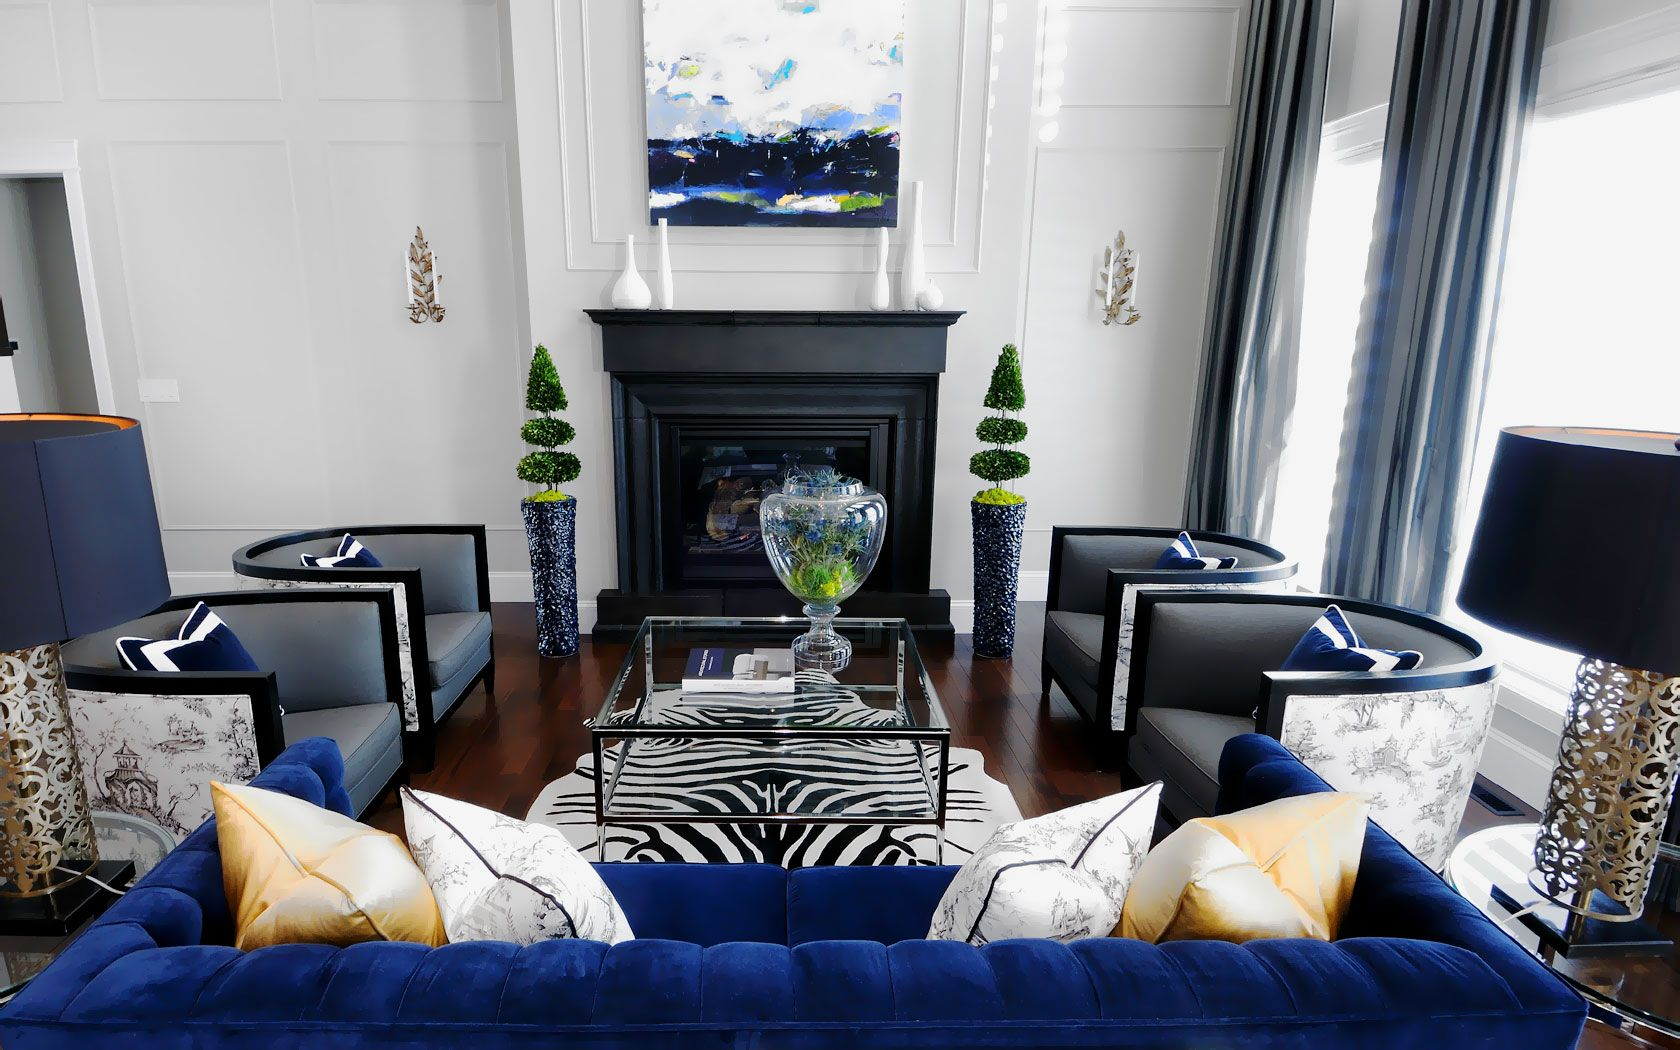 20 Of The Best Colors To Pair With Black Or White Formal Living Room Designs Blue Living Room Black And White Living Room